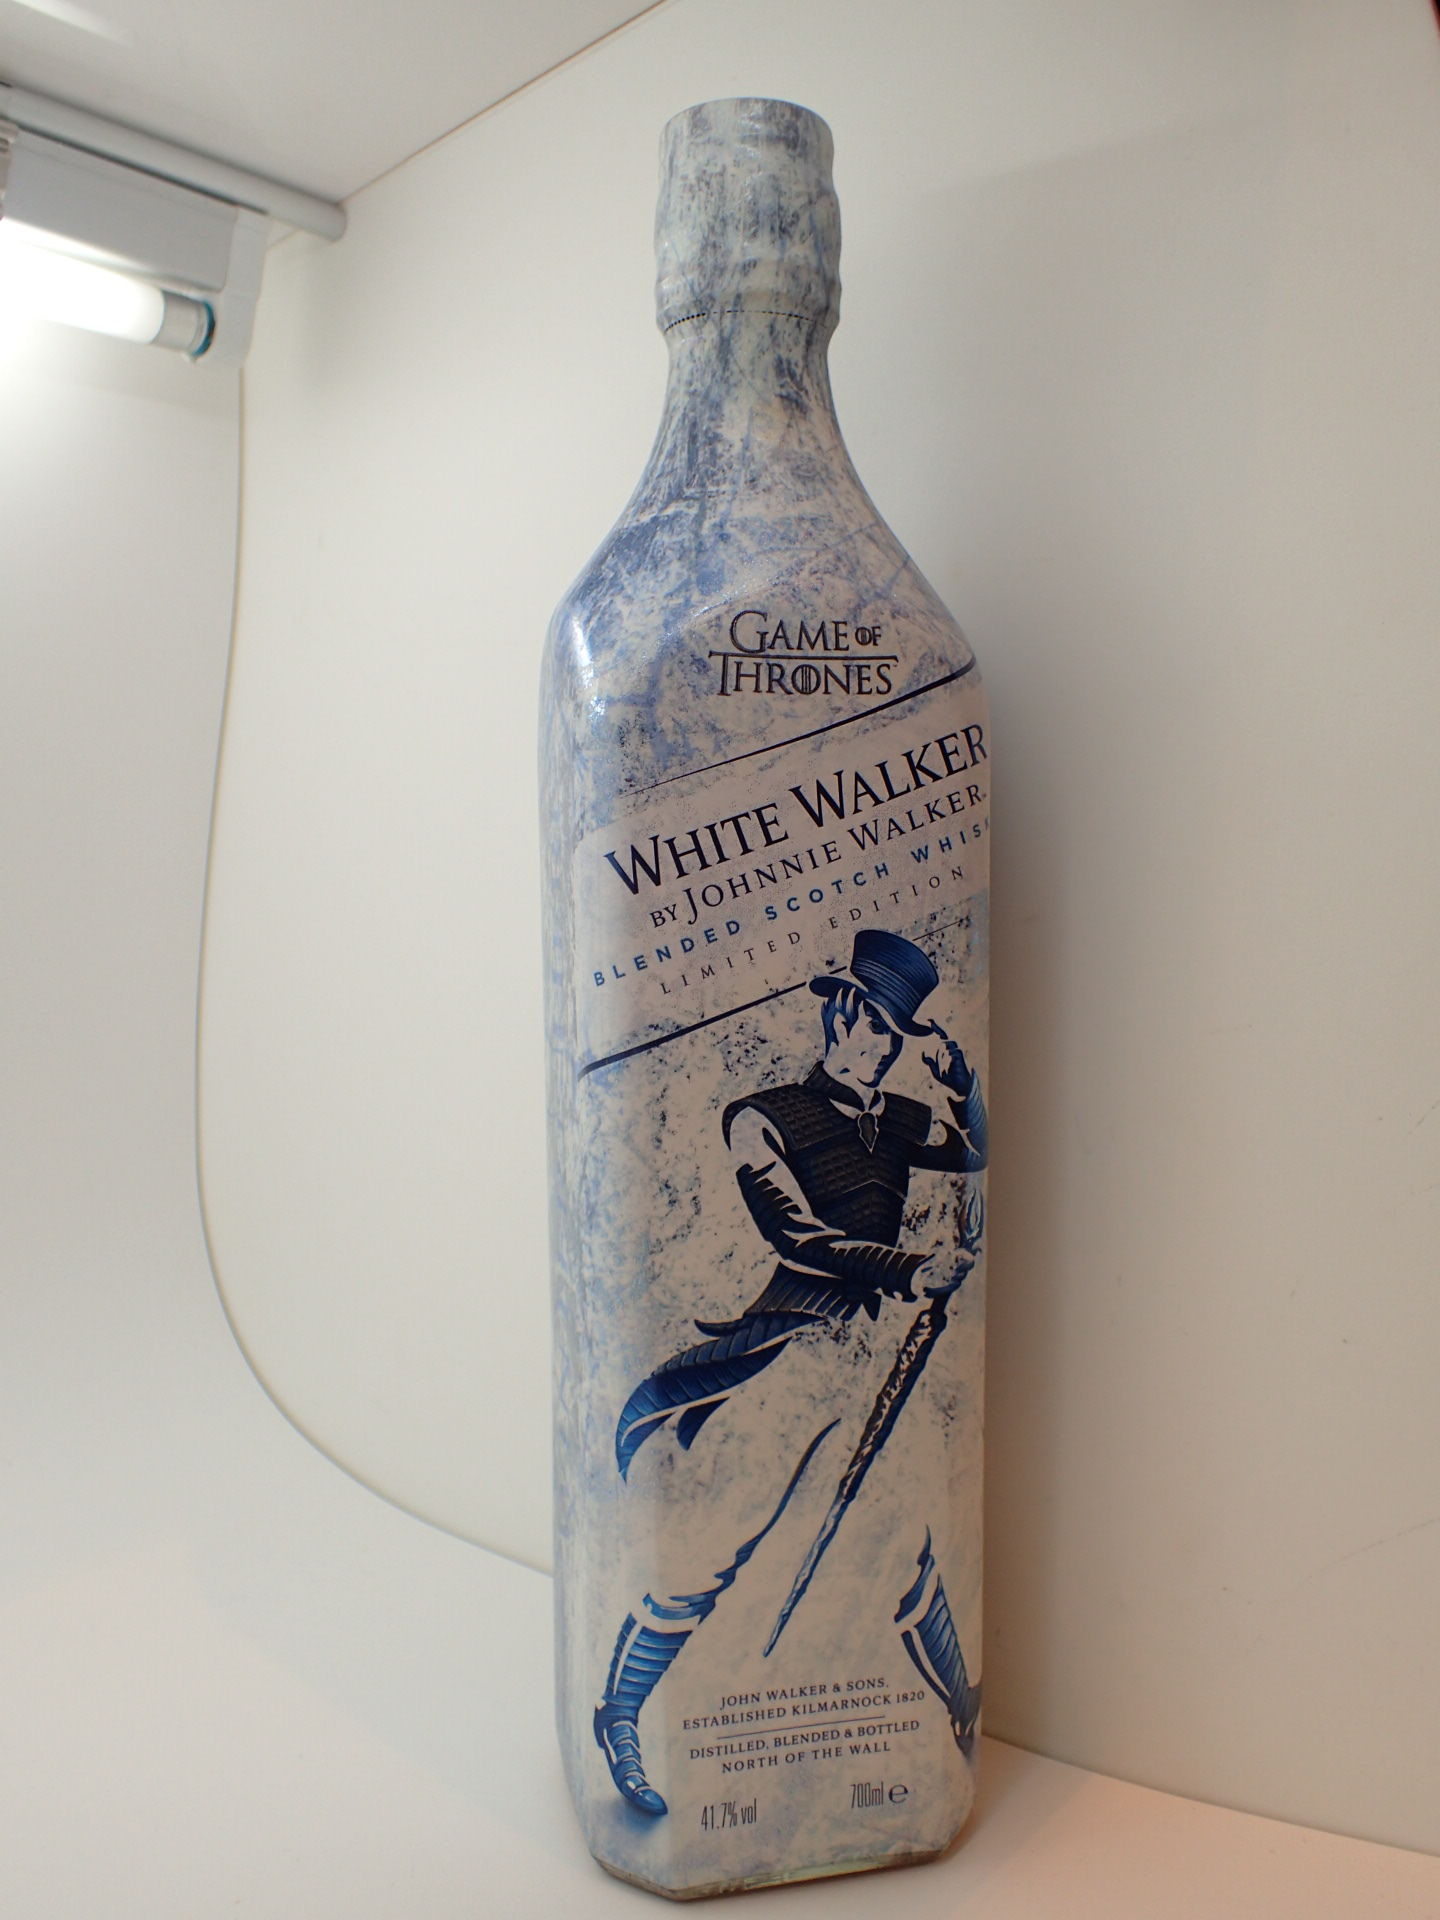 Lot 505 - Johnnie Walker limited edition Game of T